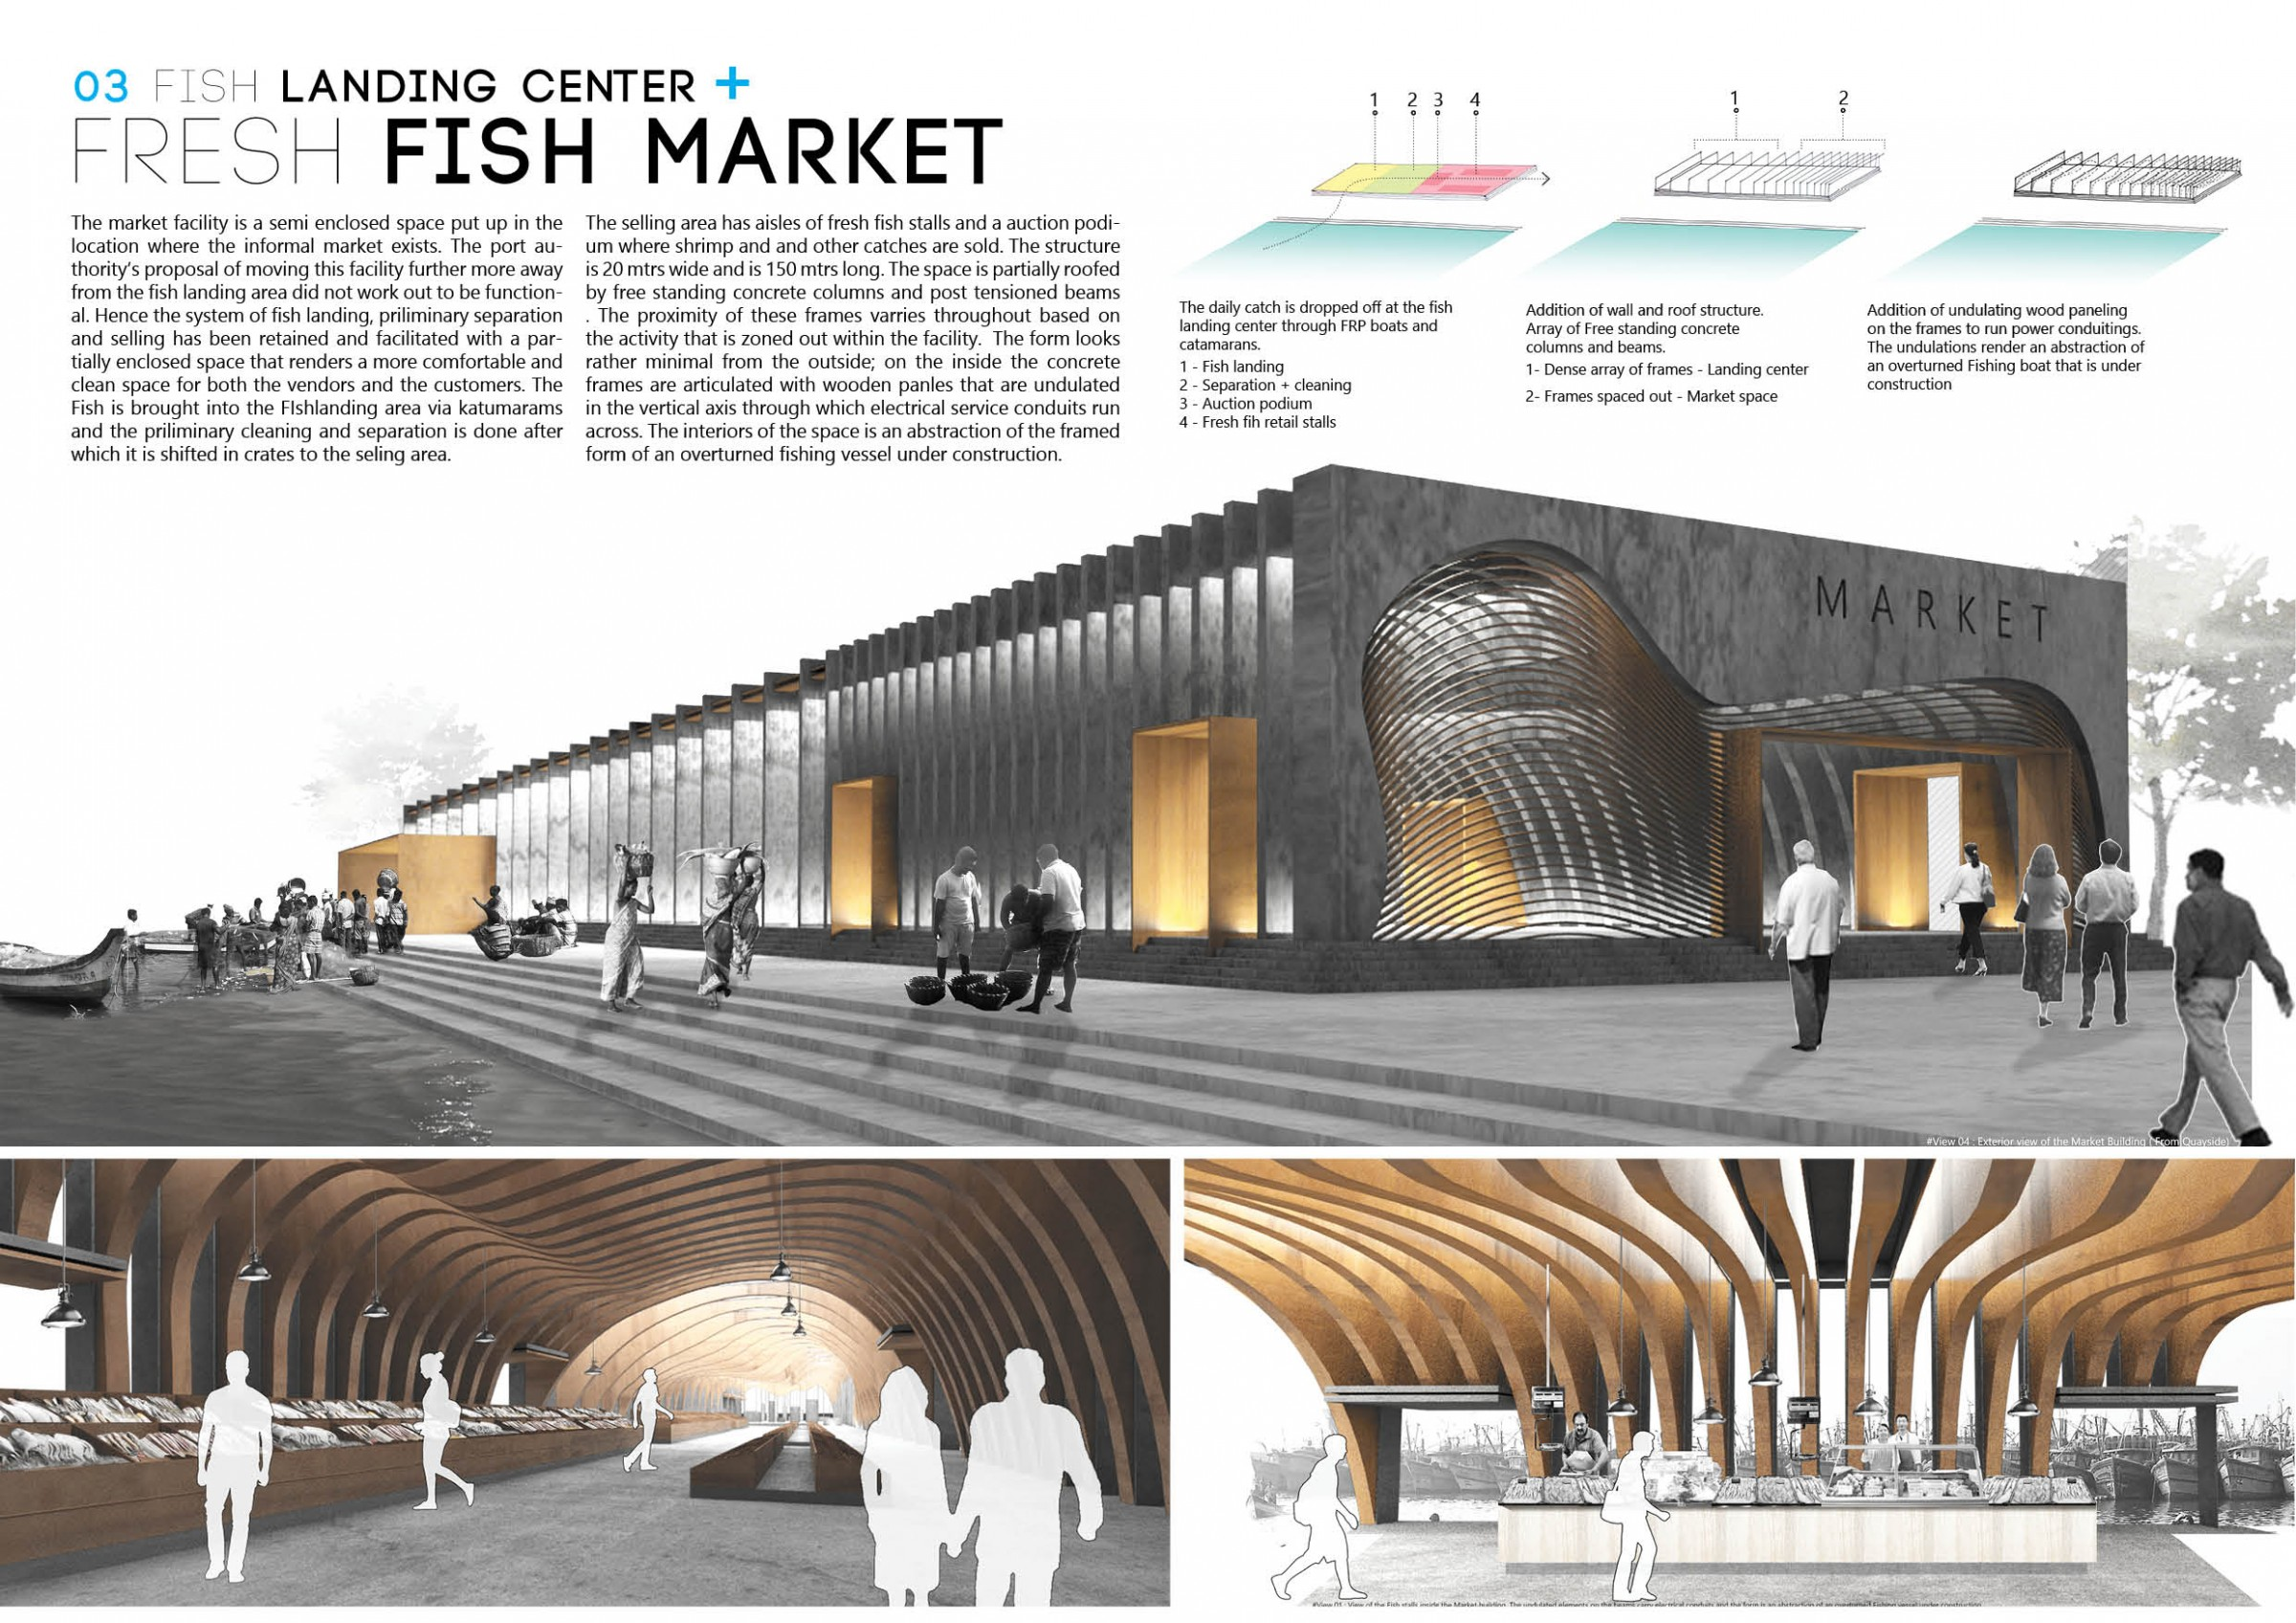 public market architecture thesis Target costing & lifecycle costing system introduction letscommunicate ltd produces mobile phones for sale in supermarkets in today's competitive market of mobile phones with short product life cycles, it is important for mobile phone producers to develop and market products that not only meets the customers demand for features at a certain.